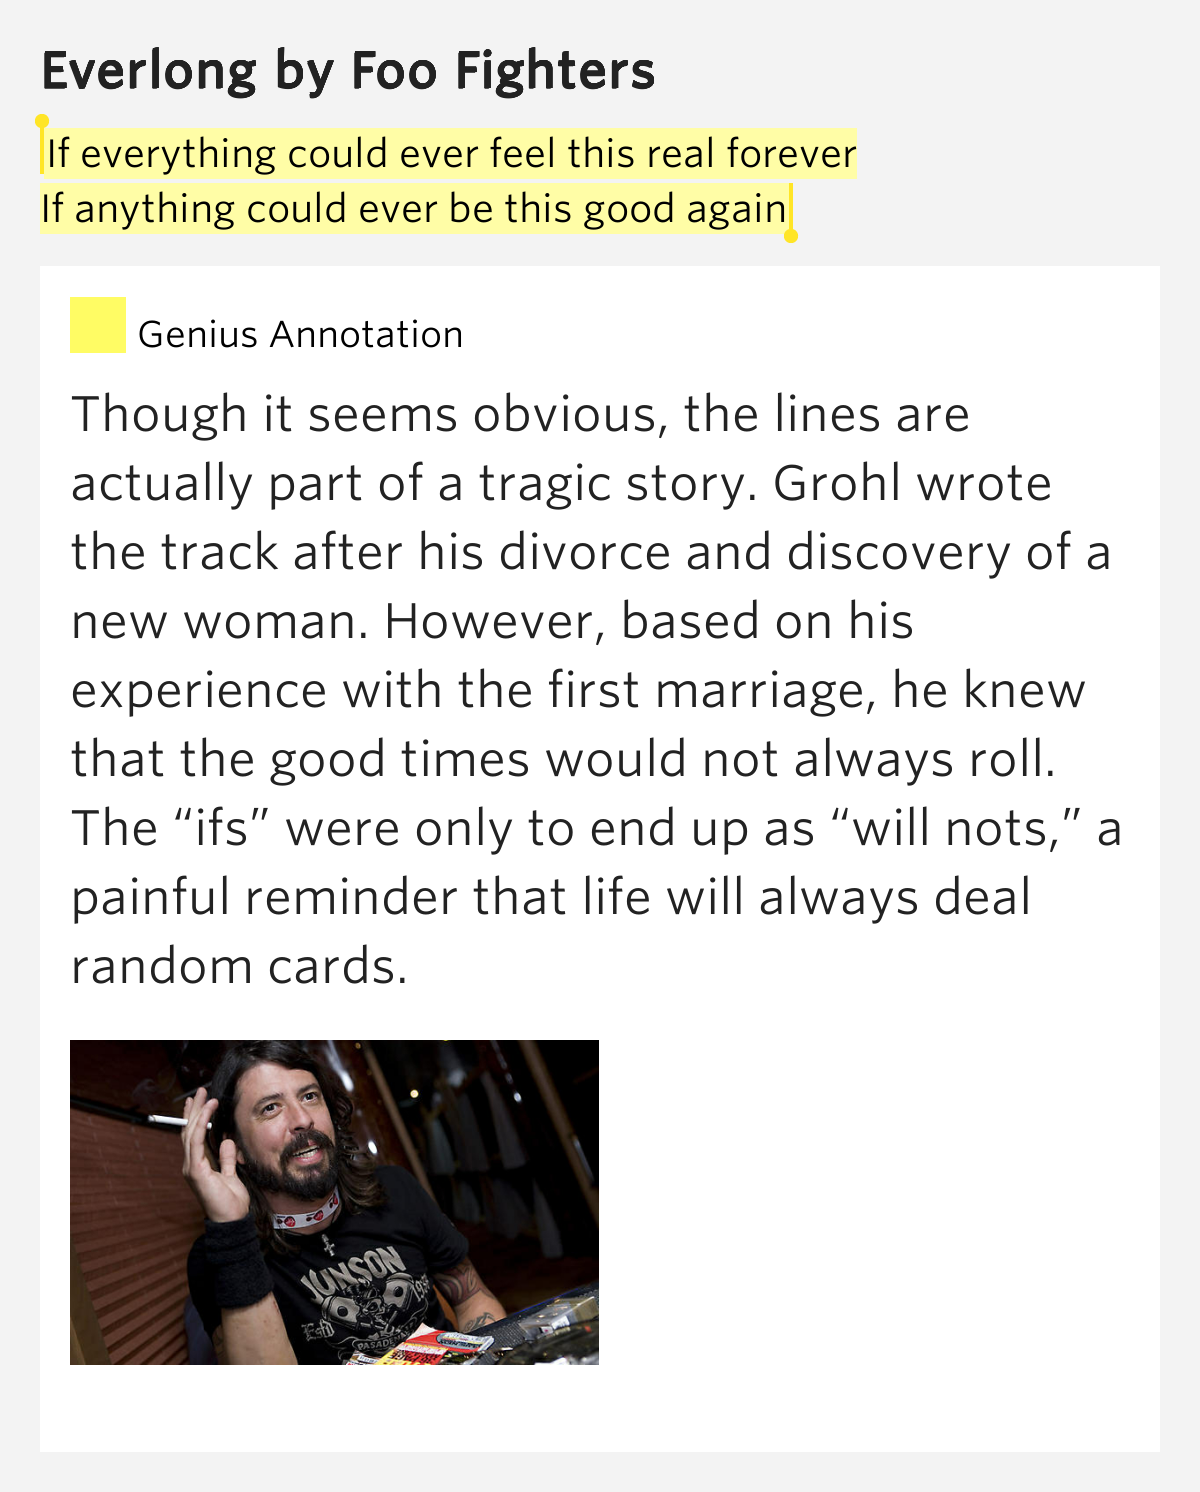 Everlong by Foo Fighters - Songfacts